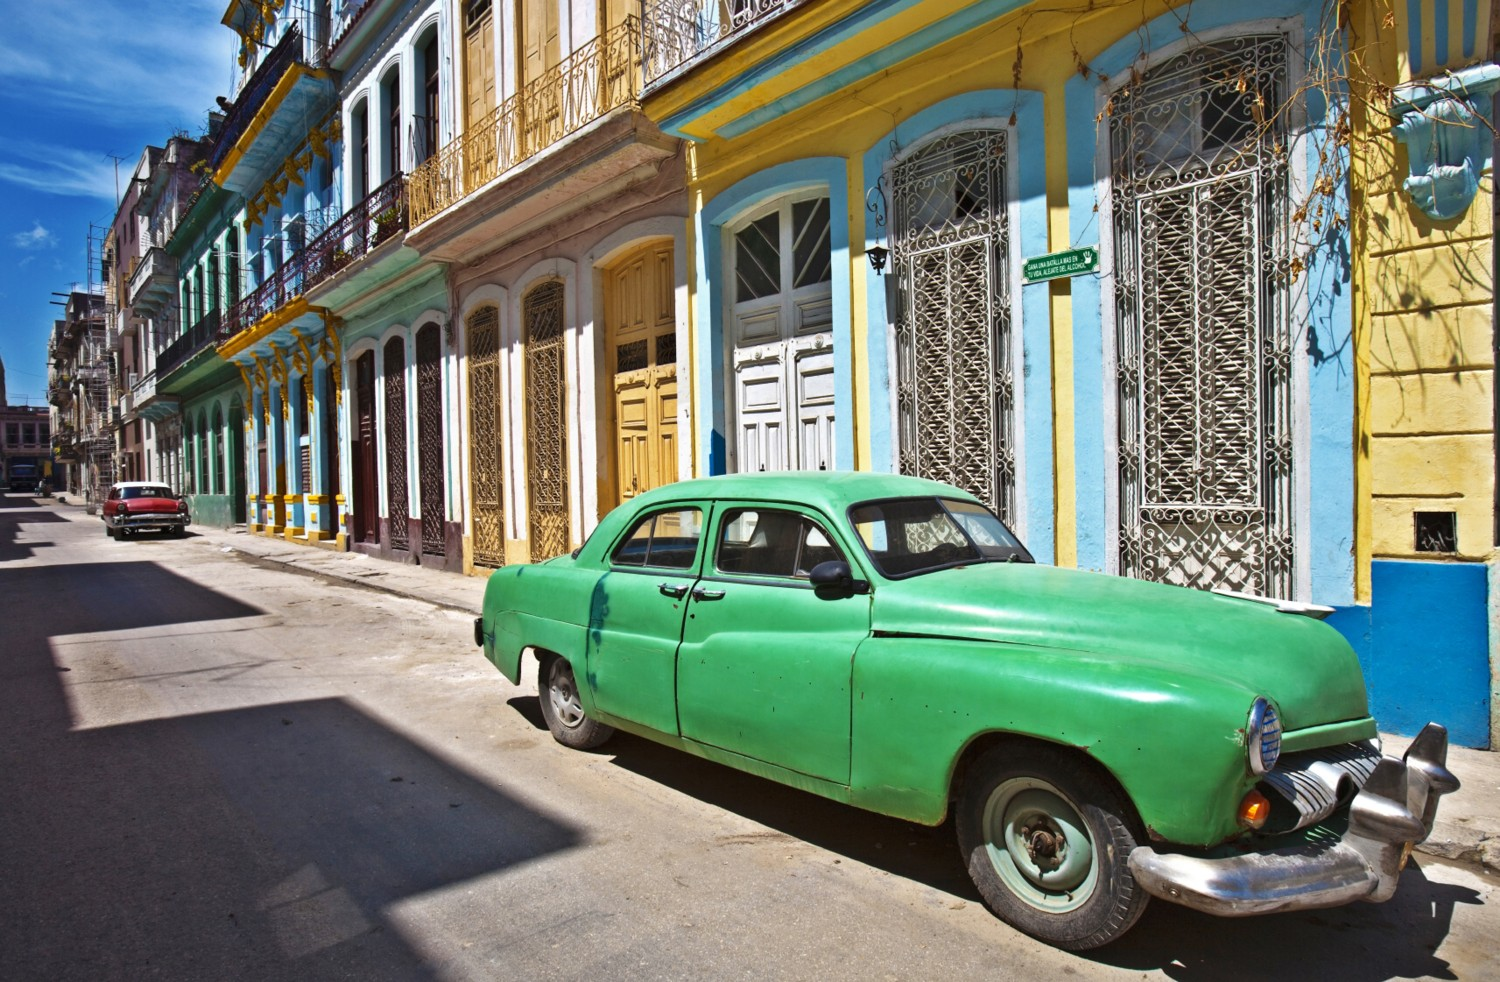 New York Times Travel Show: Despite Trump Policy, Americans CAN Travel to Cuba!